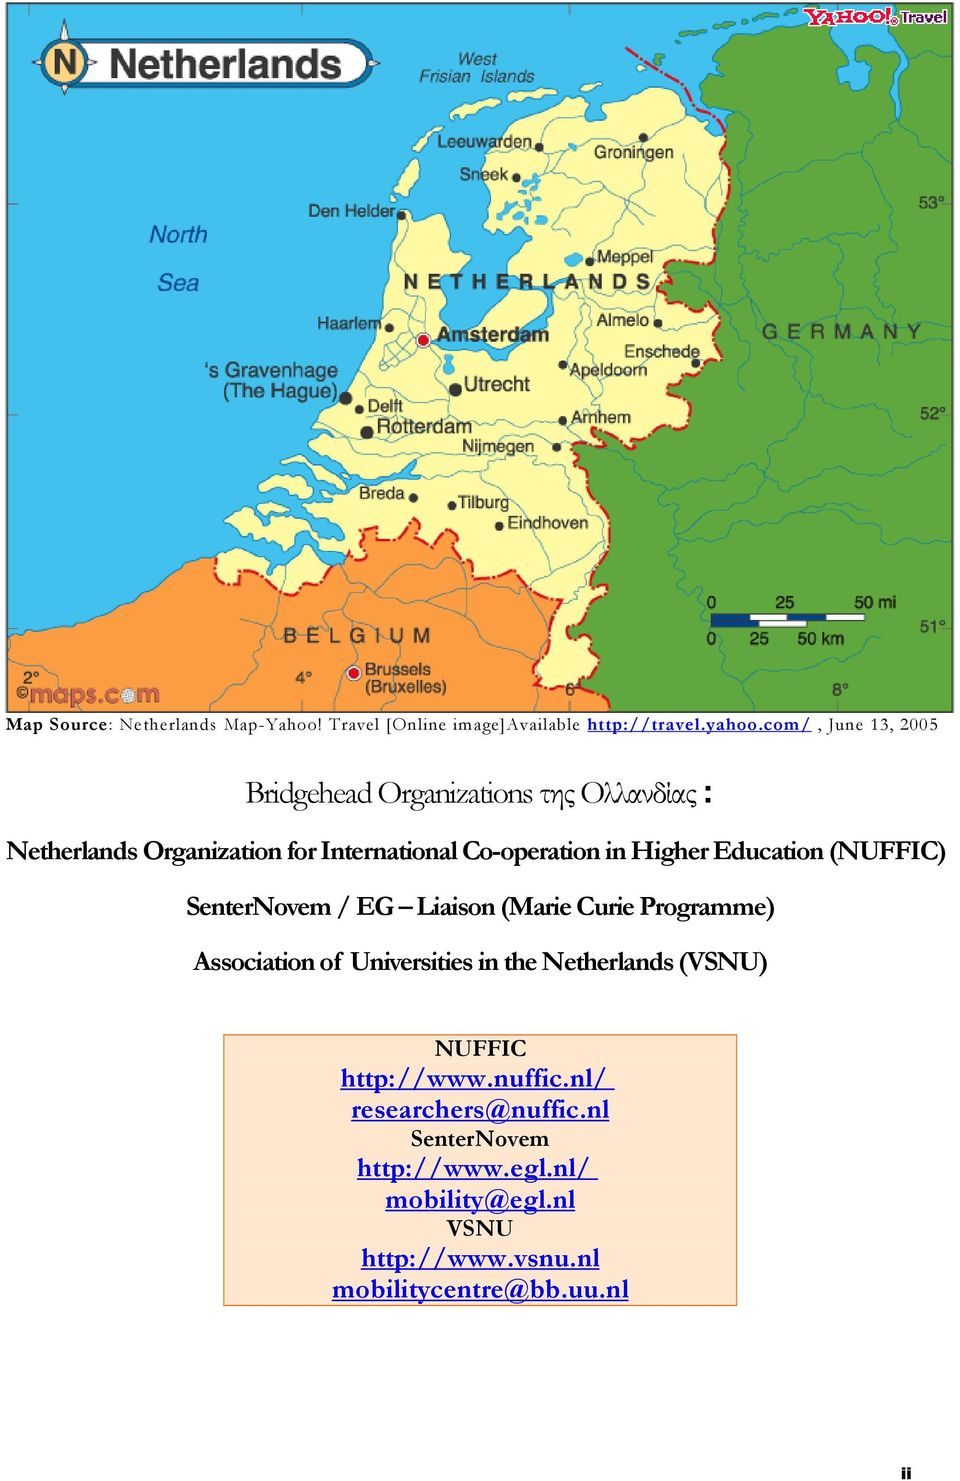 Higher Education (NUFFIC) SenterNovem / EG Liaison (Marie Curie Programme) Association of Universities in the